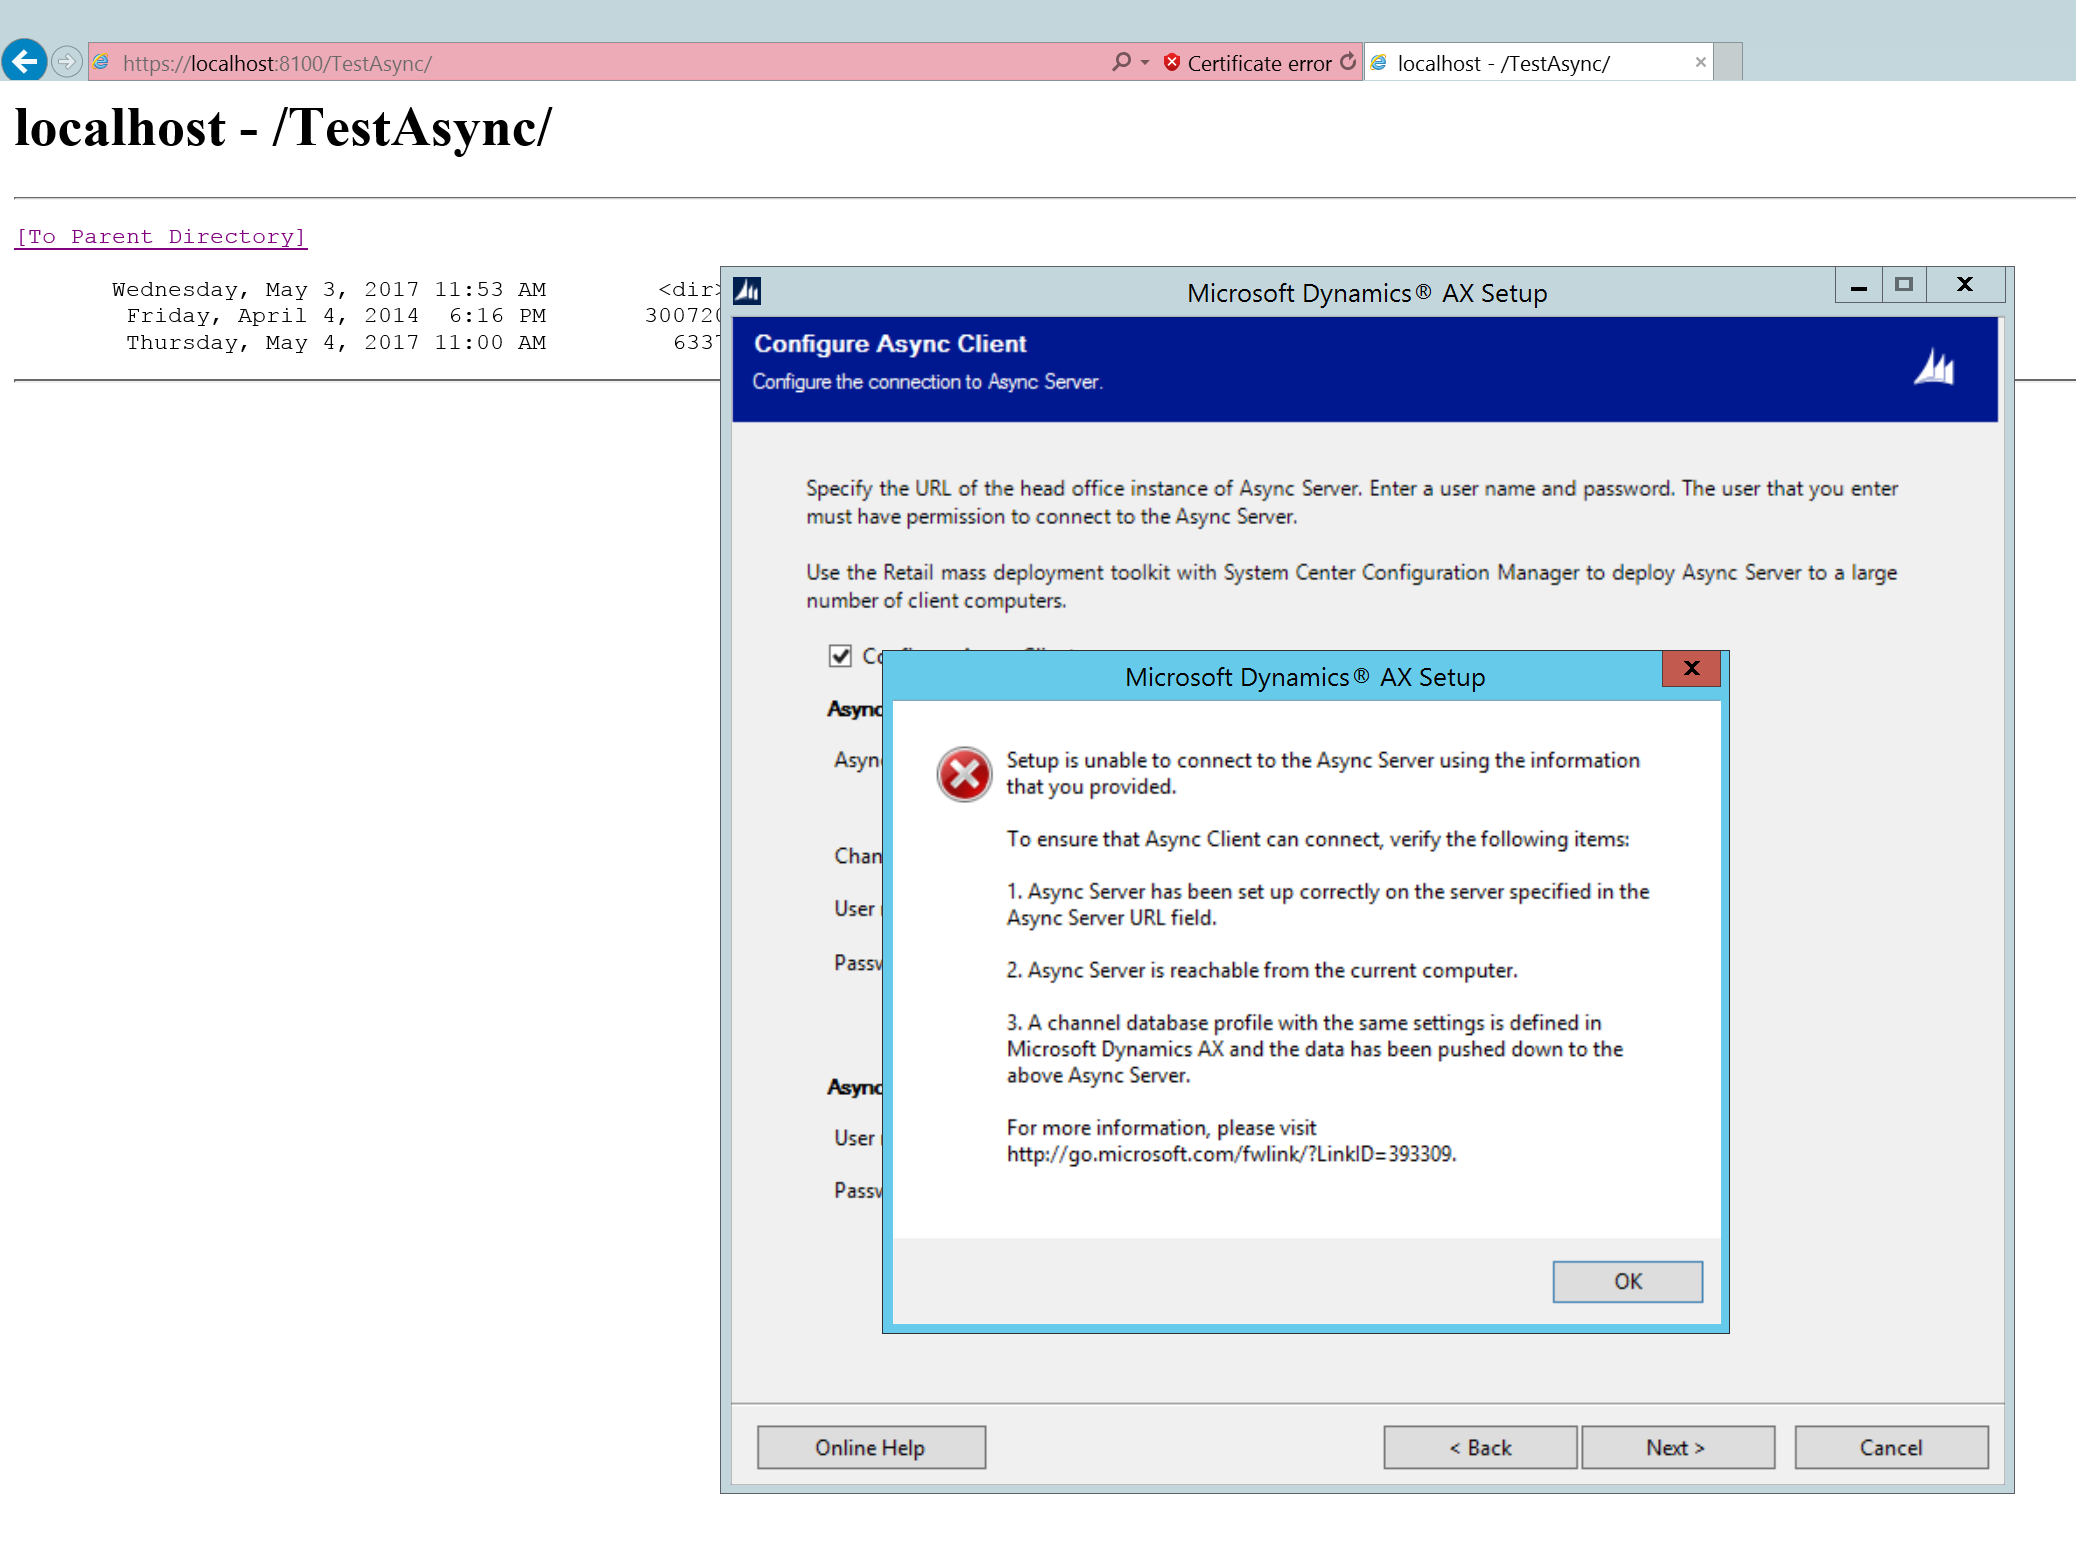 Self signed certificate for async server microsoft dynamics ax i installed it many times but no luck still stuck with this issue xflitez Choice Image